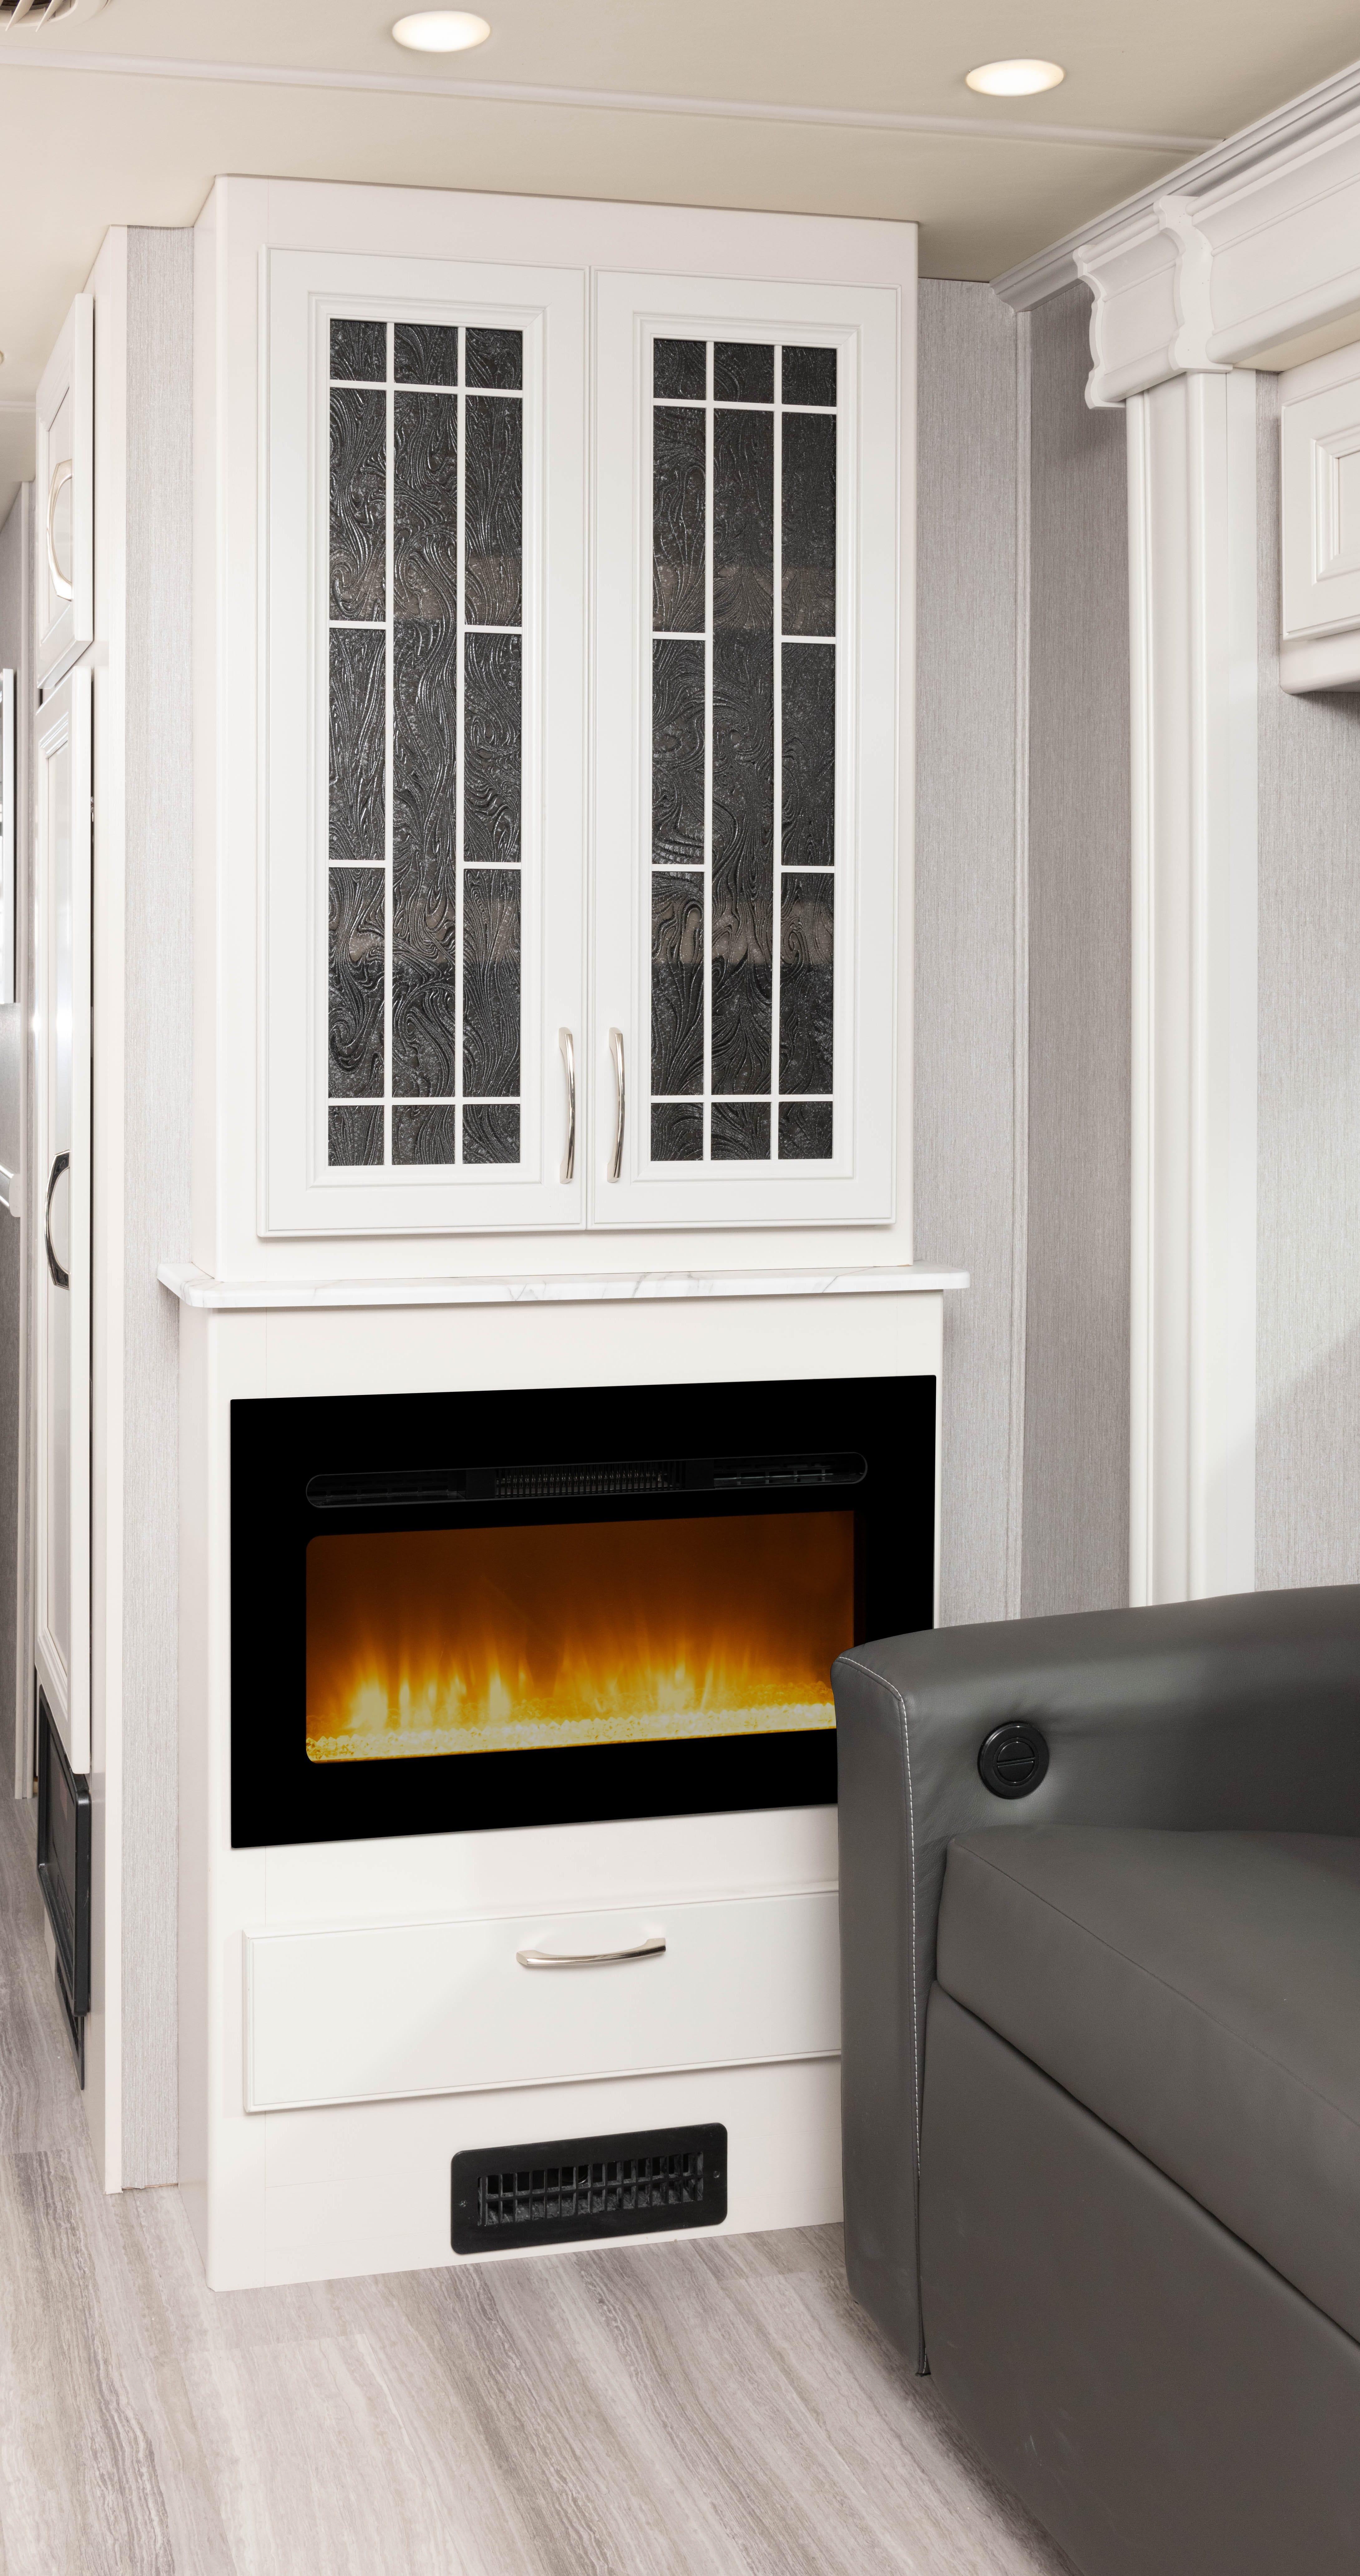 14 fireplace Frontier34 GT Alloy Heritage1486 MY22